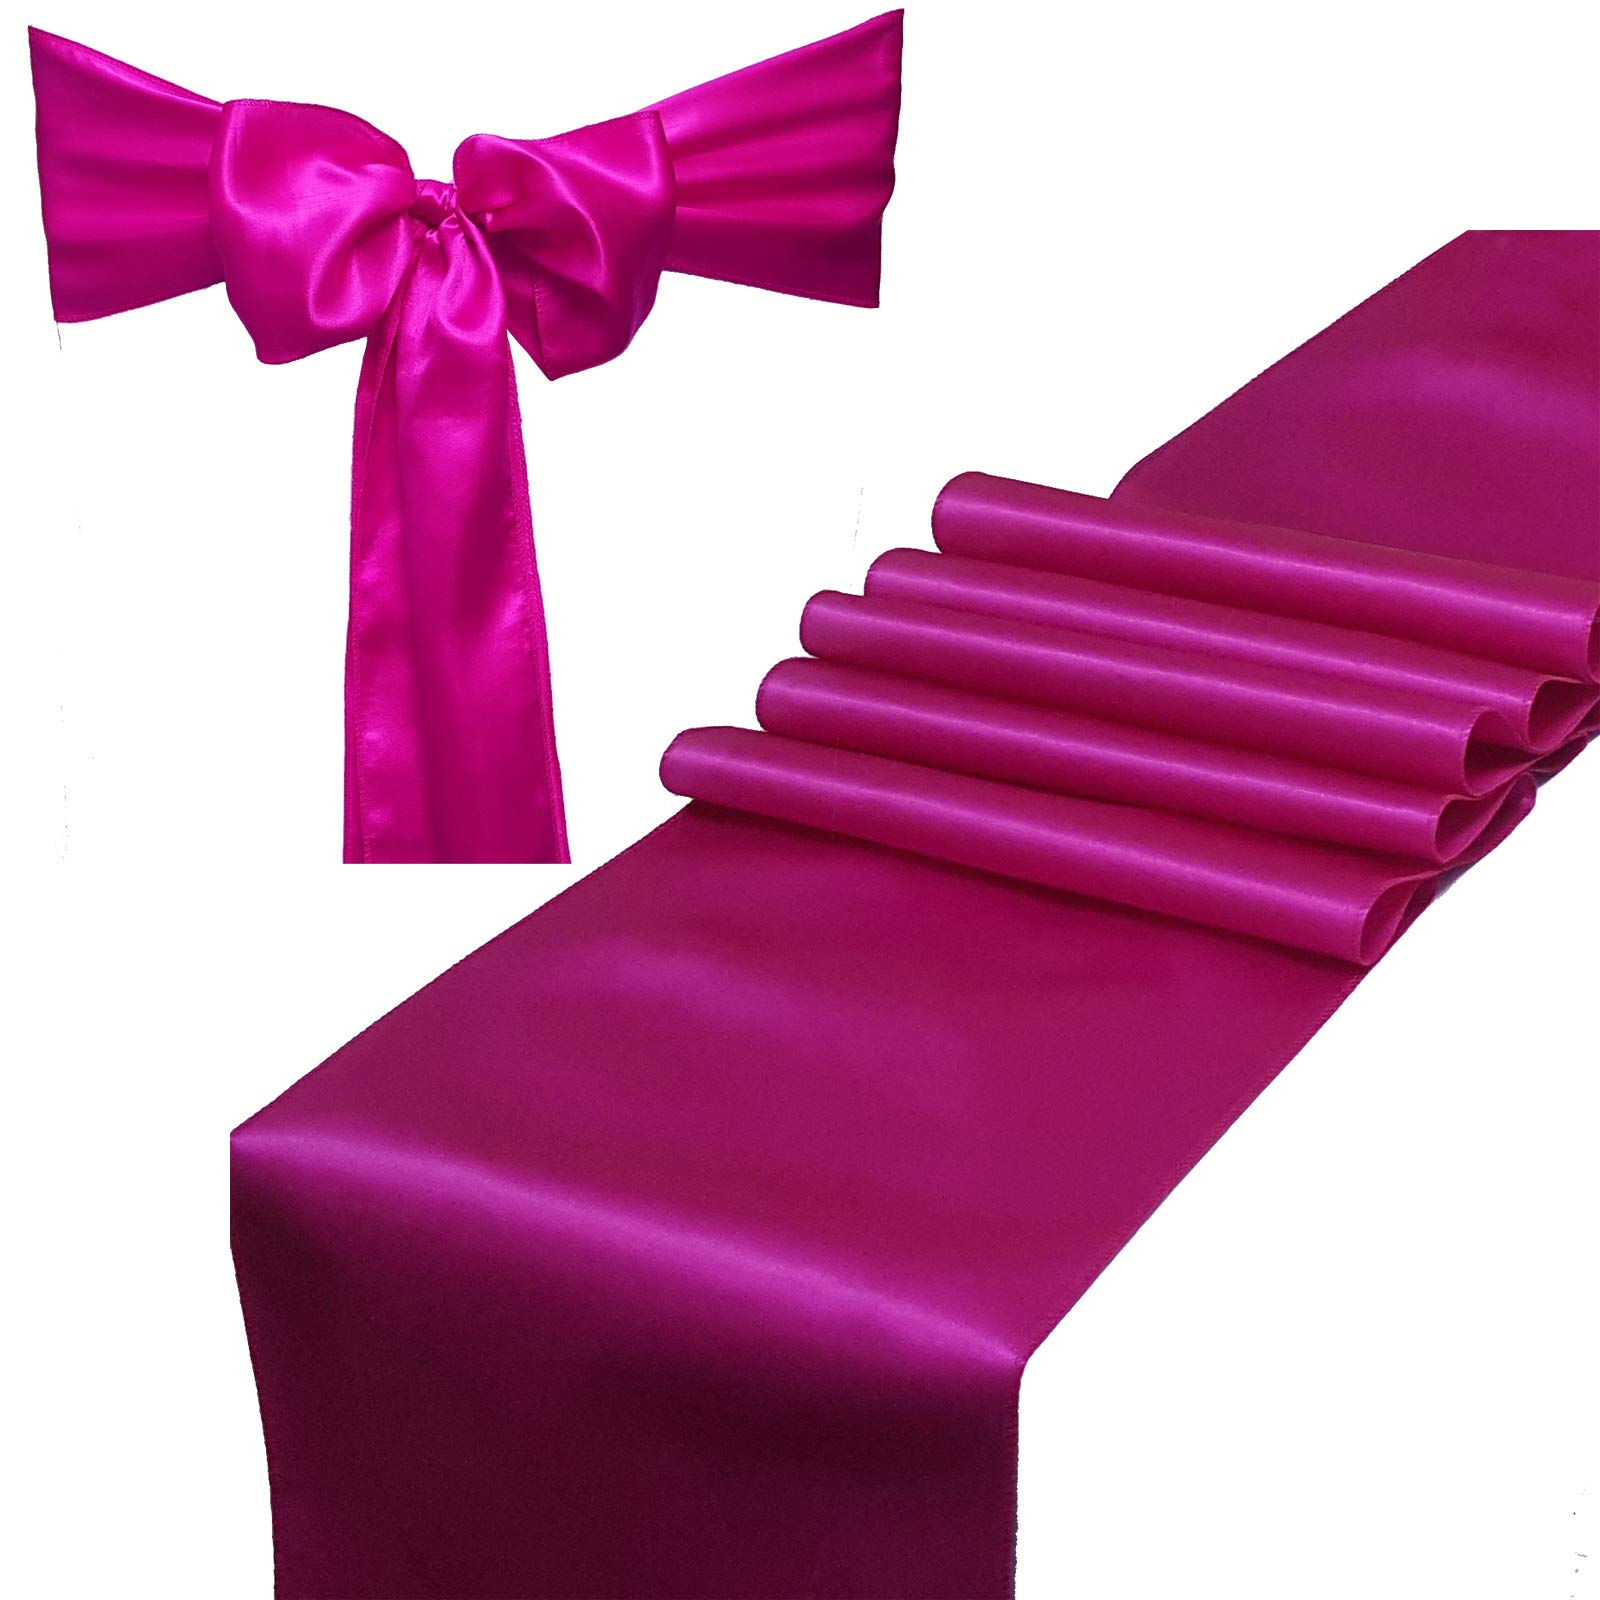 Combo Pack - 2 Satin Table Runners 12 x 108 inch & 10 Chair Sashes for Wedding Banquet Decoration, Bright Silk and Smooth Fabric Party Decor (Combo 2 Table Runner + 10 Chair Saches, Magenta)